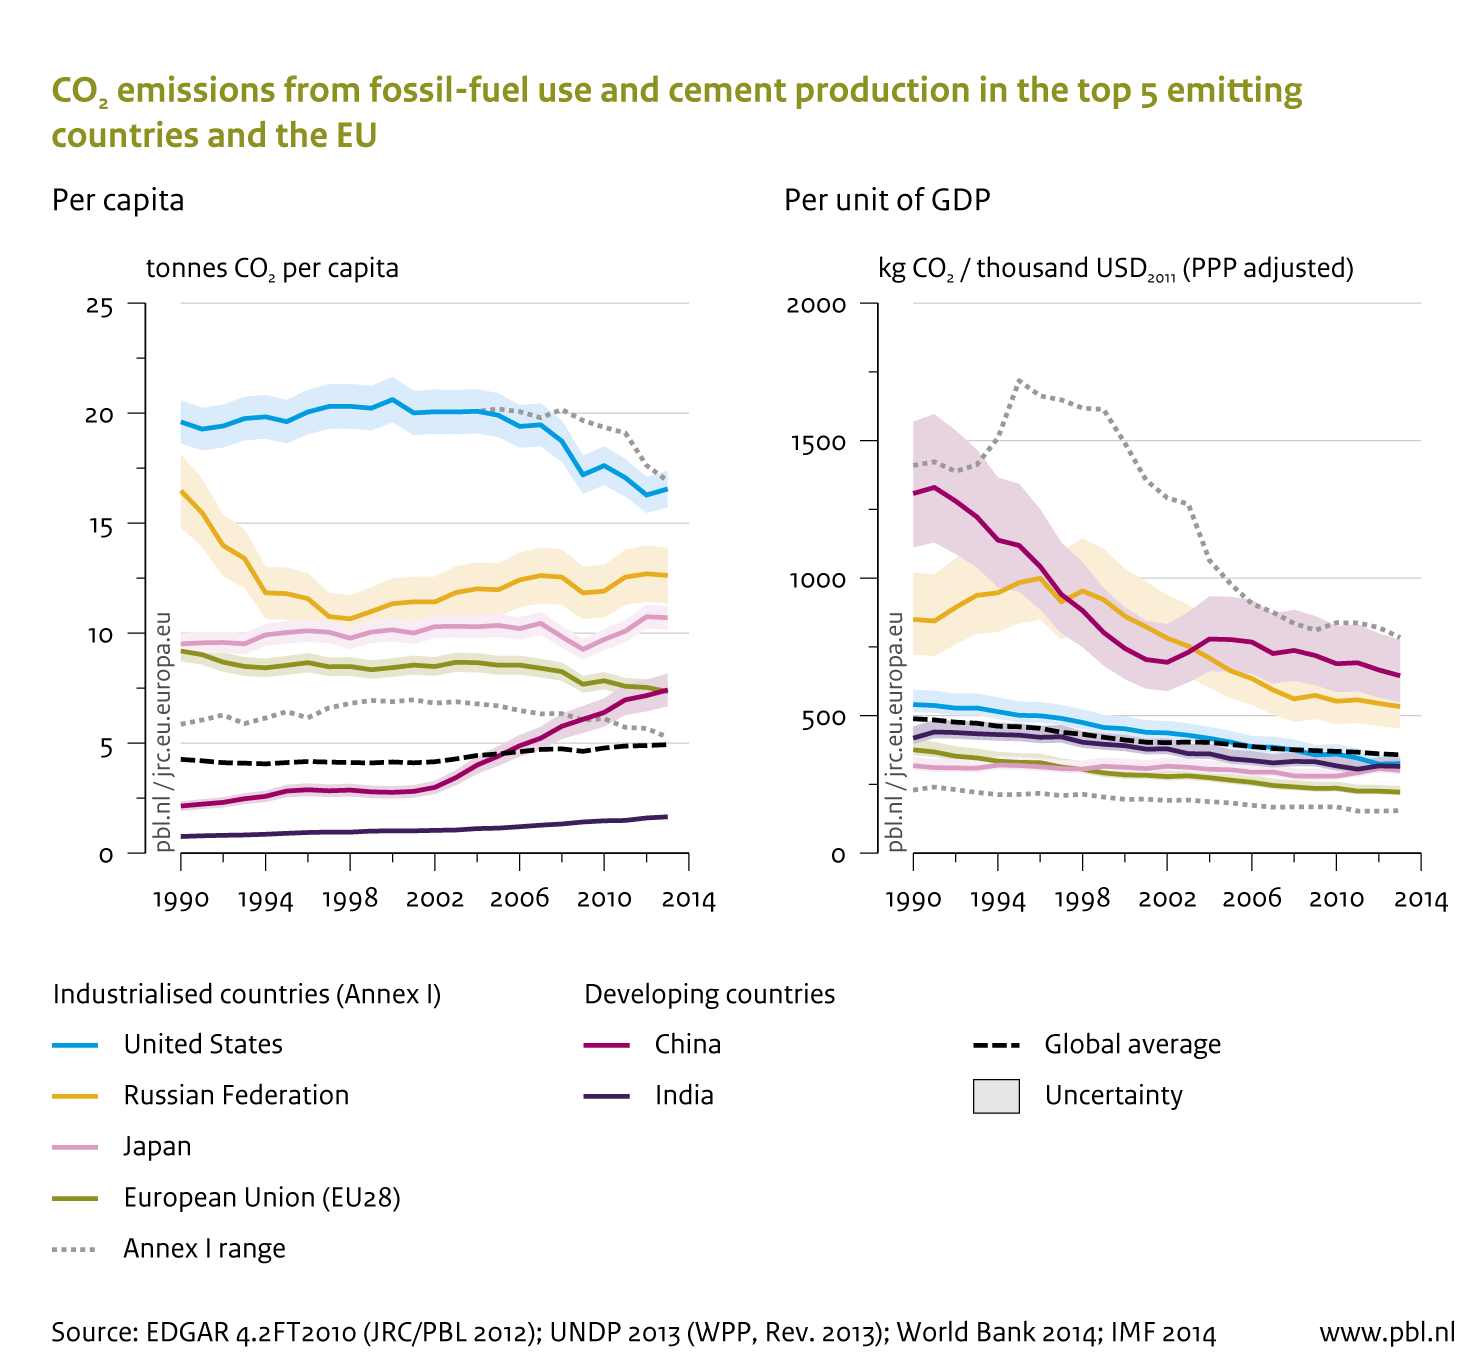 CO2 emissions per capita and unit of GDP from fossil-fuel use and cement production for industrialised and developing countries.